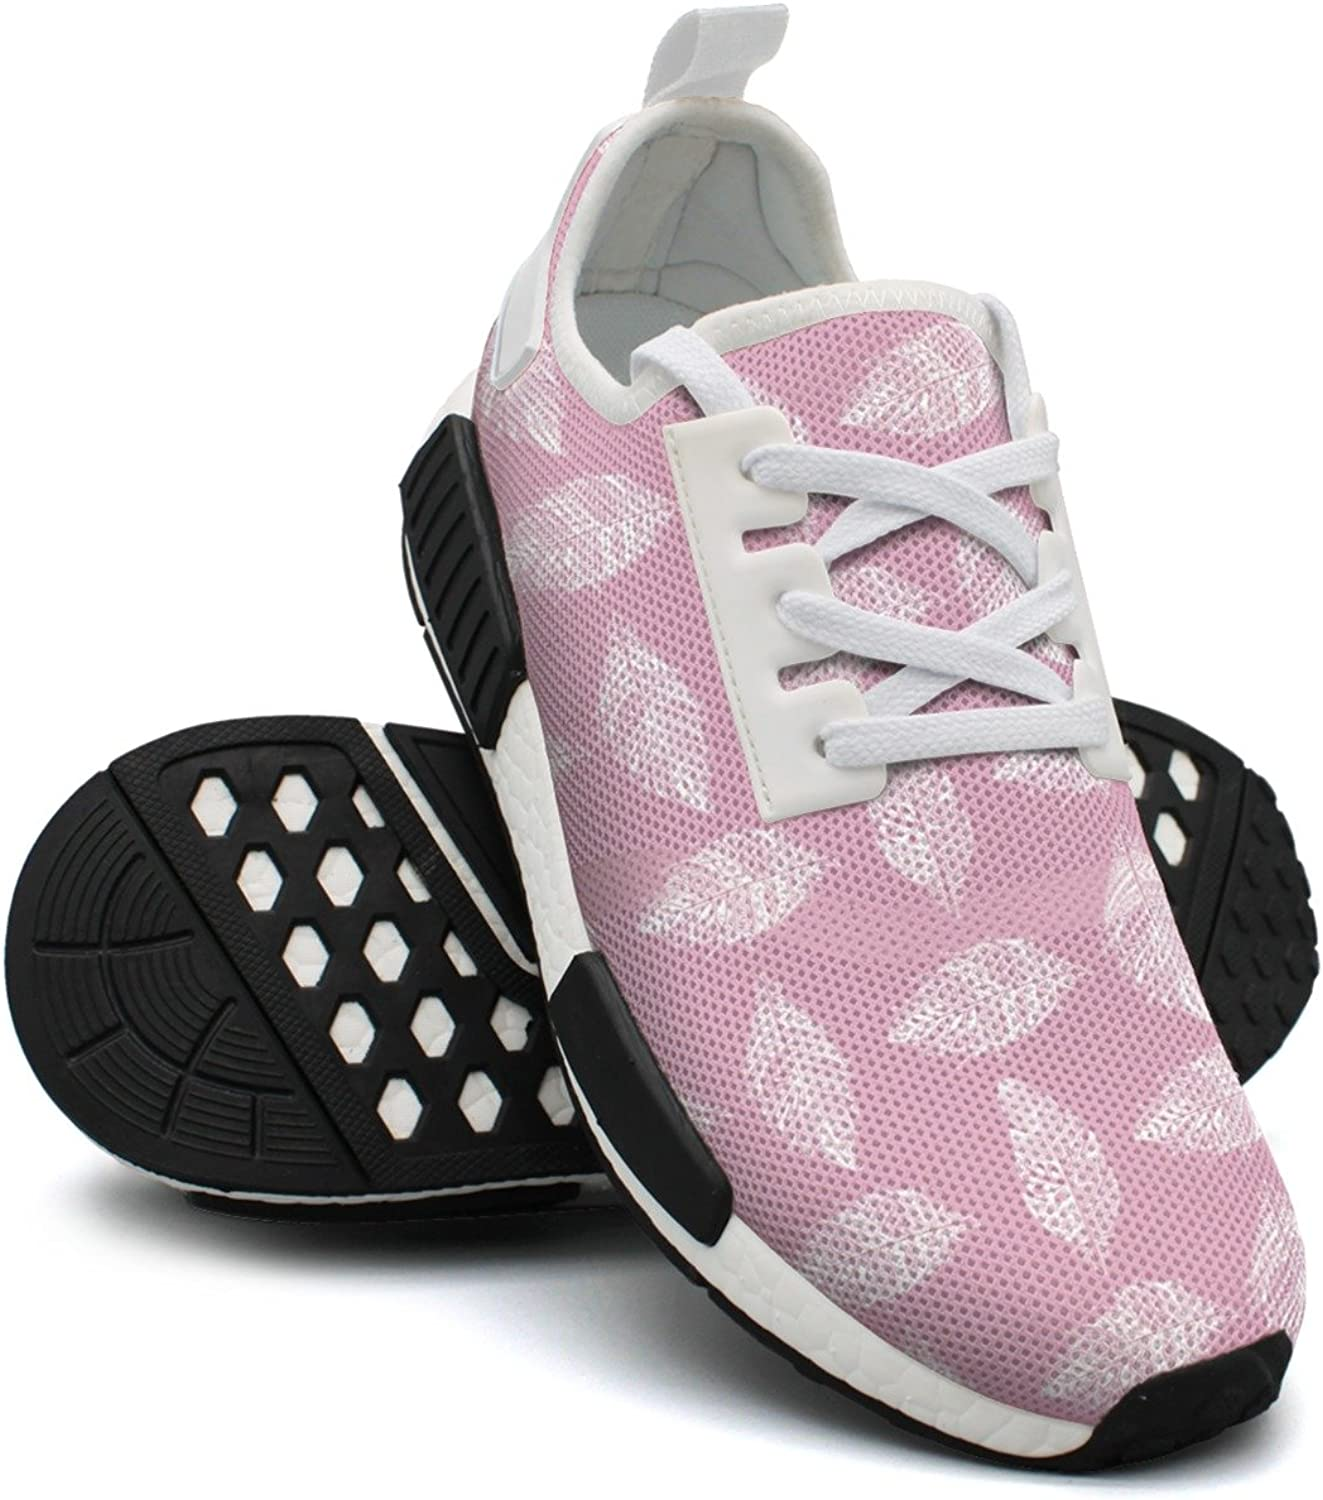 Hand Drawn Feather On Pink Women's Casual Lightweight Sneaker Gym Outdoor Running shoes